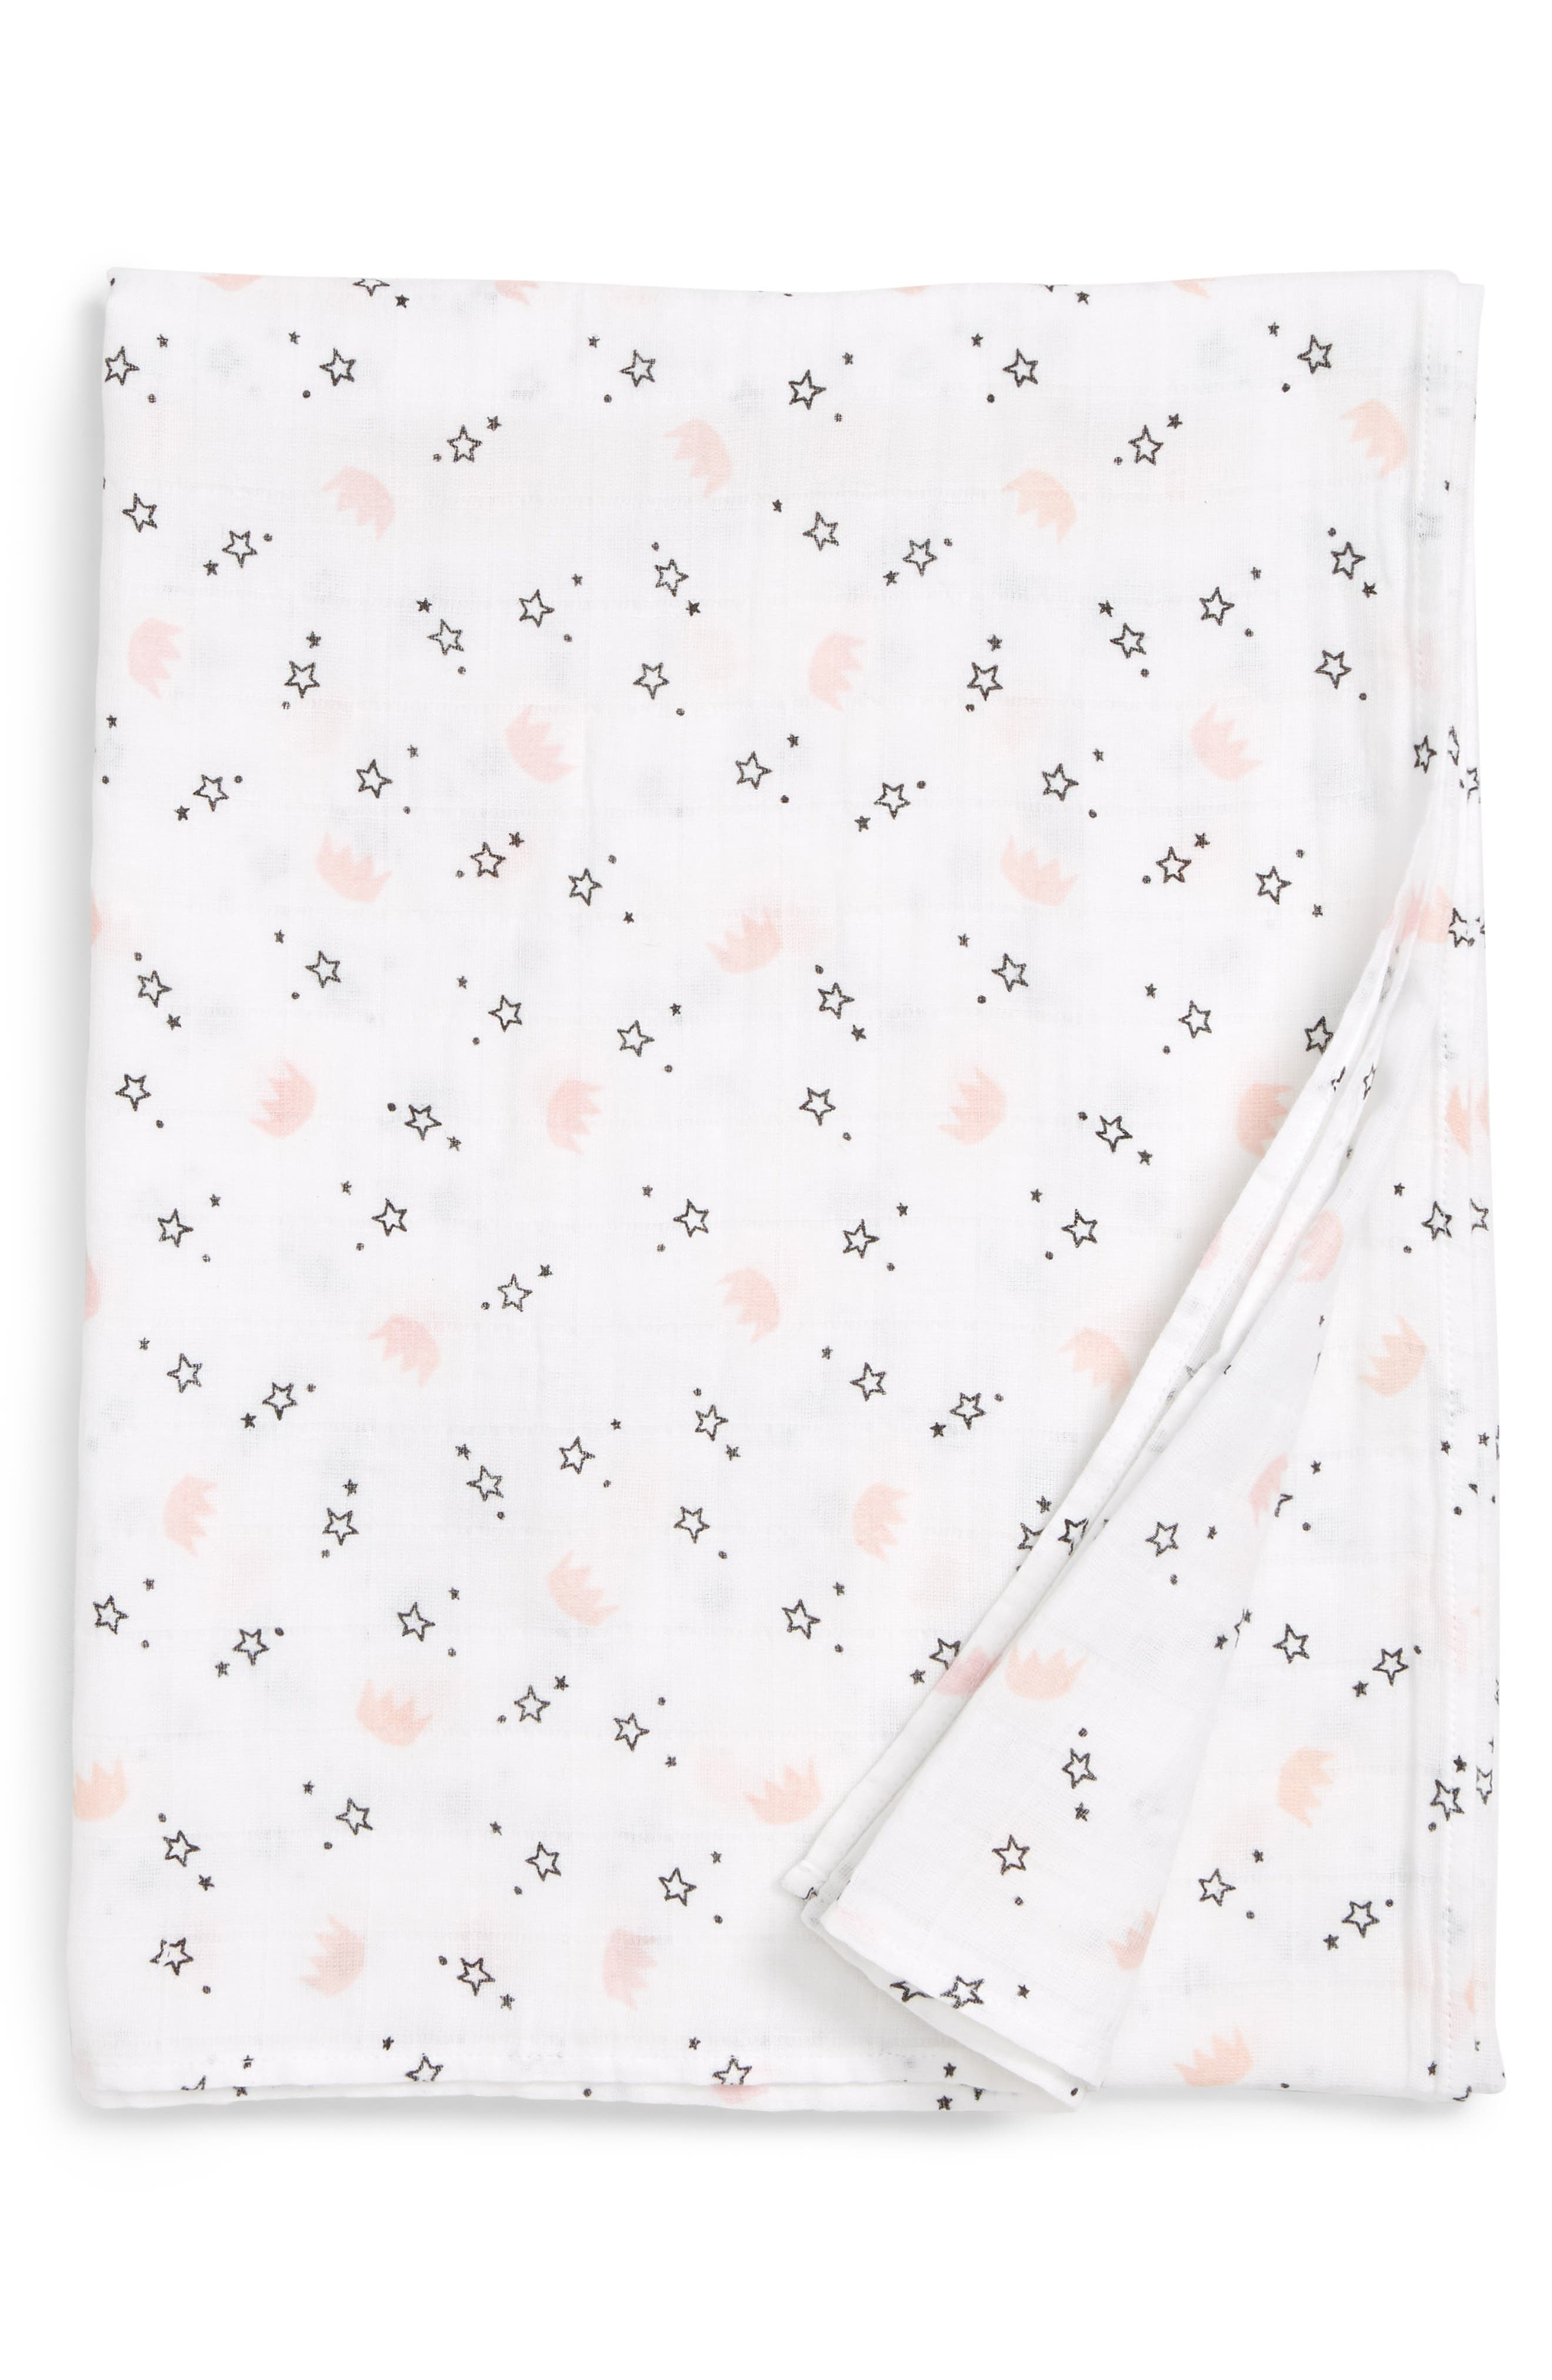 Cotton Swaddle Blanket,                             Main thumbnail 1, color,                             WHITE- PINK CROWNS